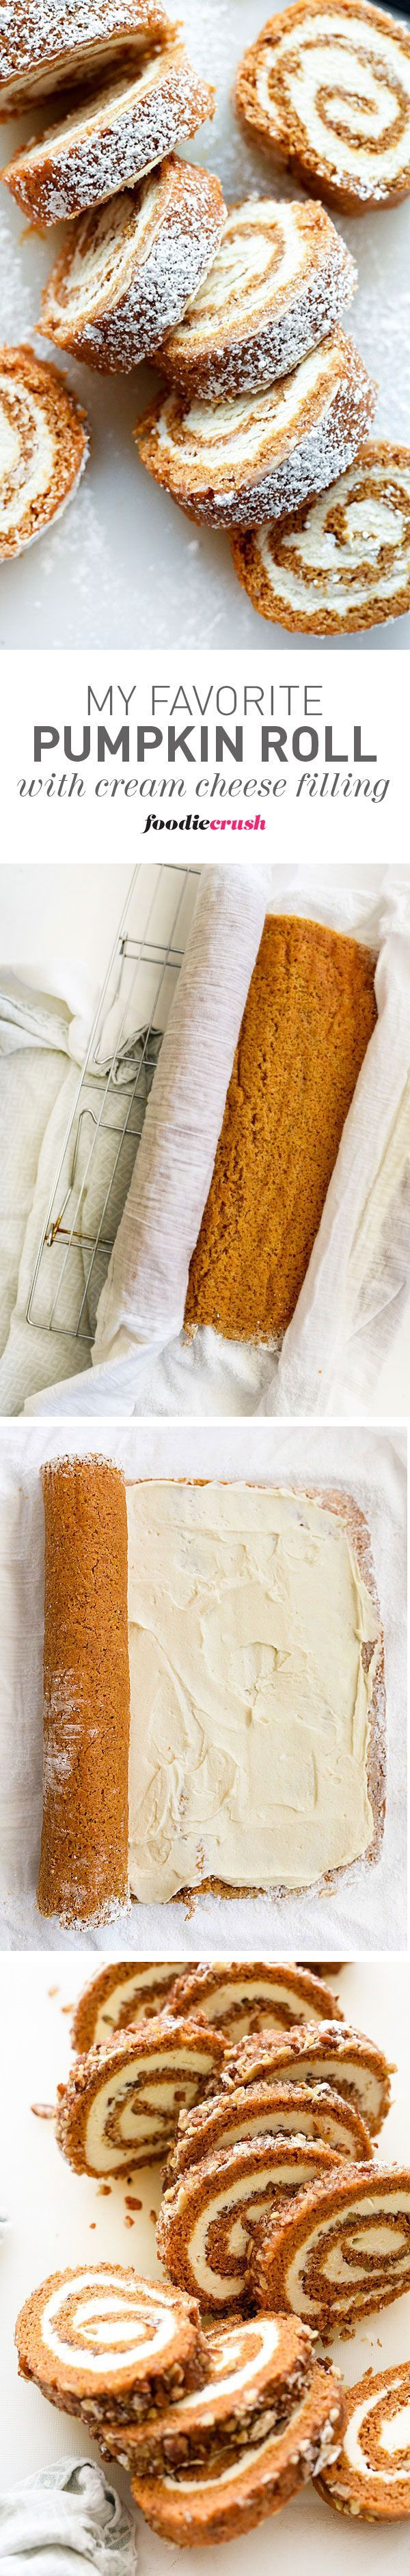 Does the world need another Pumpkin Roll recipe? YES IT DOES! This is my favorite recipe for Pumpkin Roll with Cream Cheese Filling that I've eaten every fall since I was a kid. It's the best! (with and without nuts versions) | http://foodiecrush.com